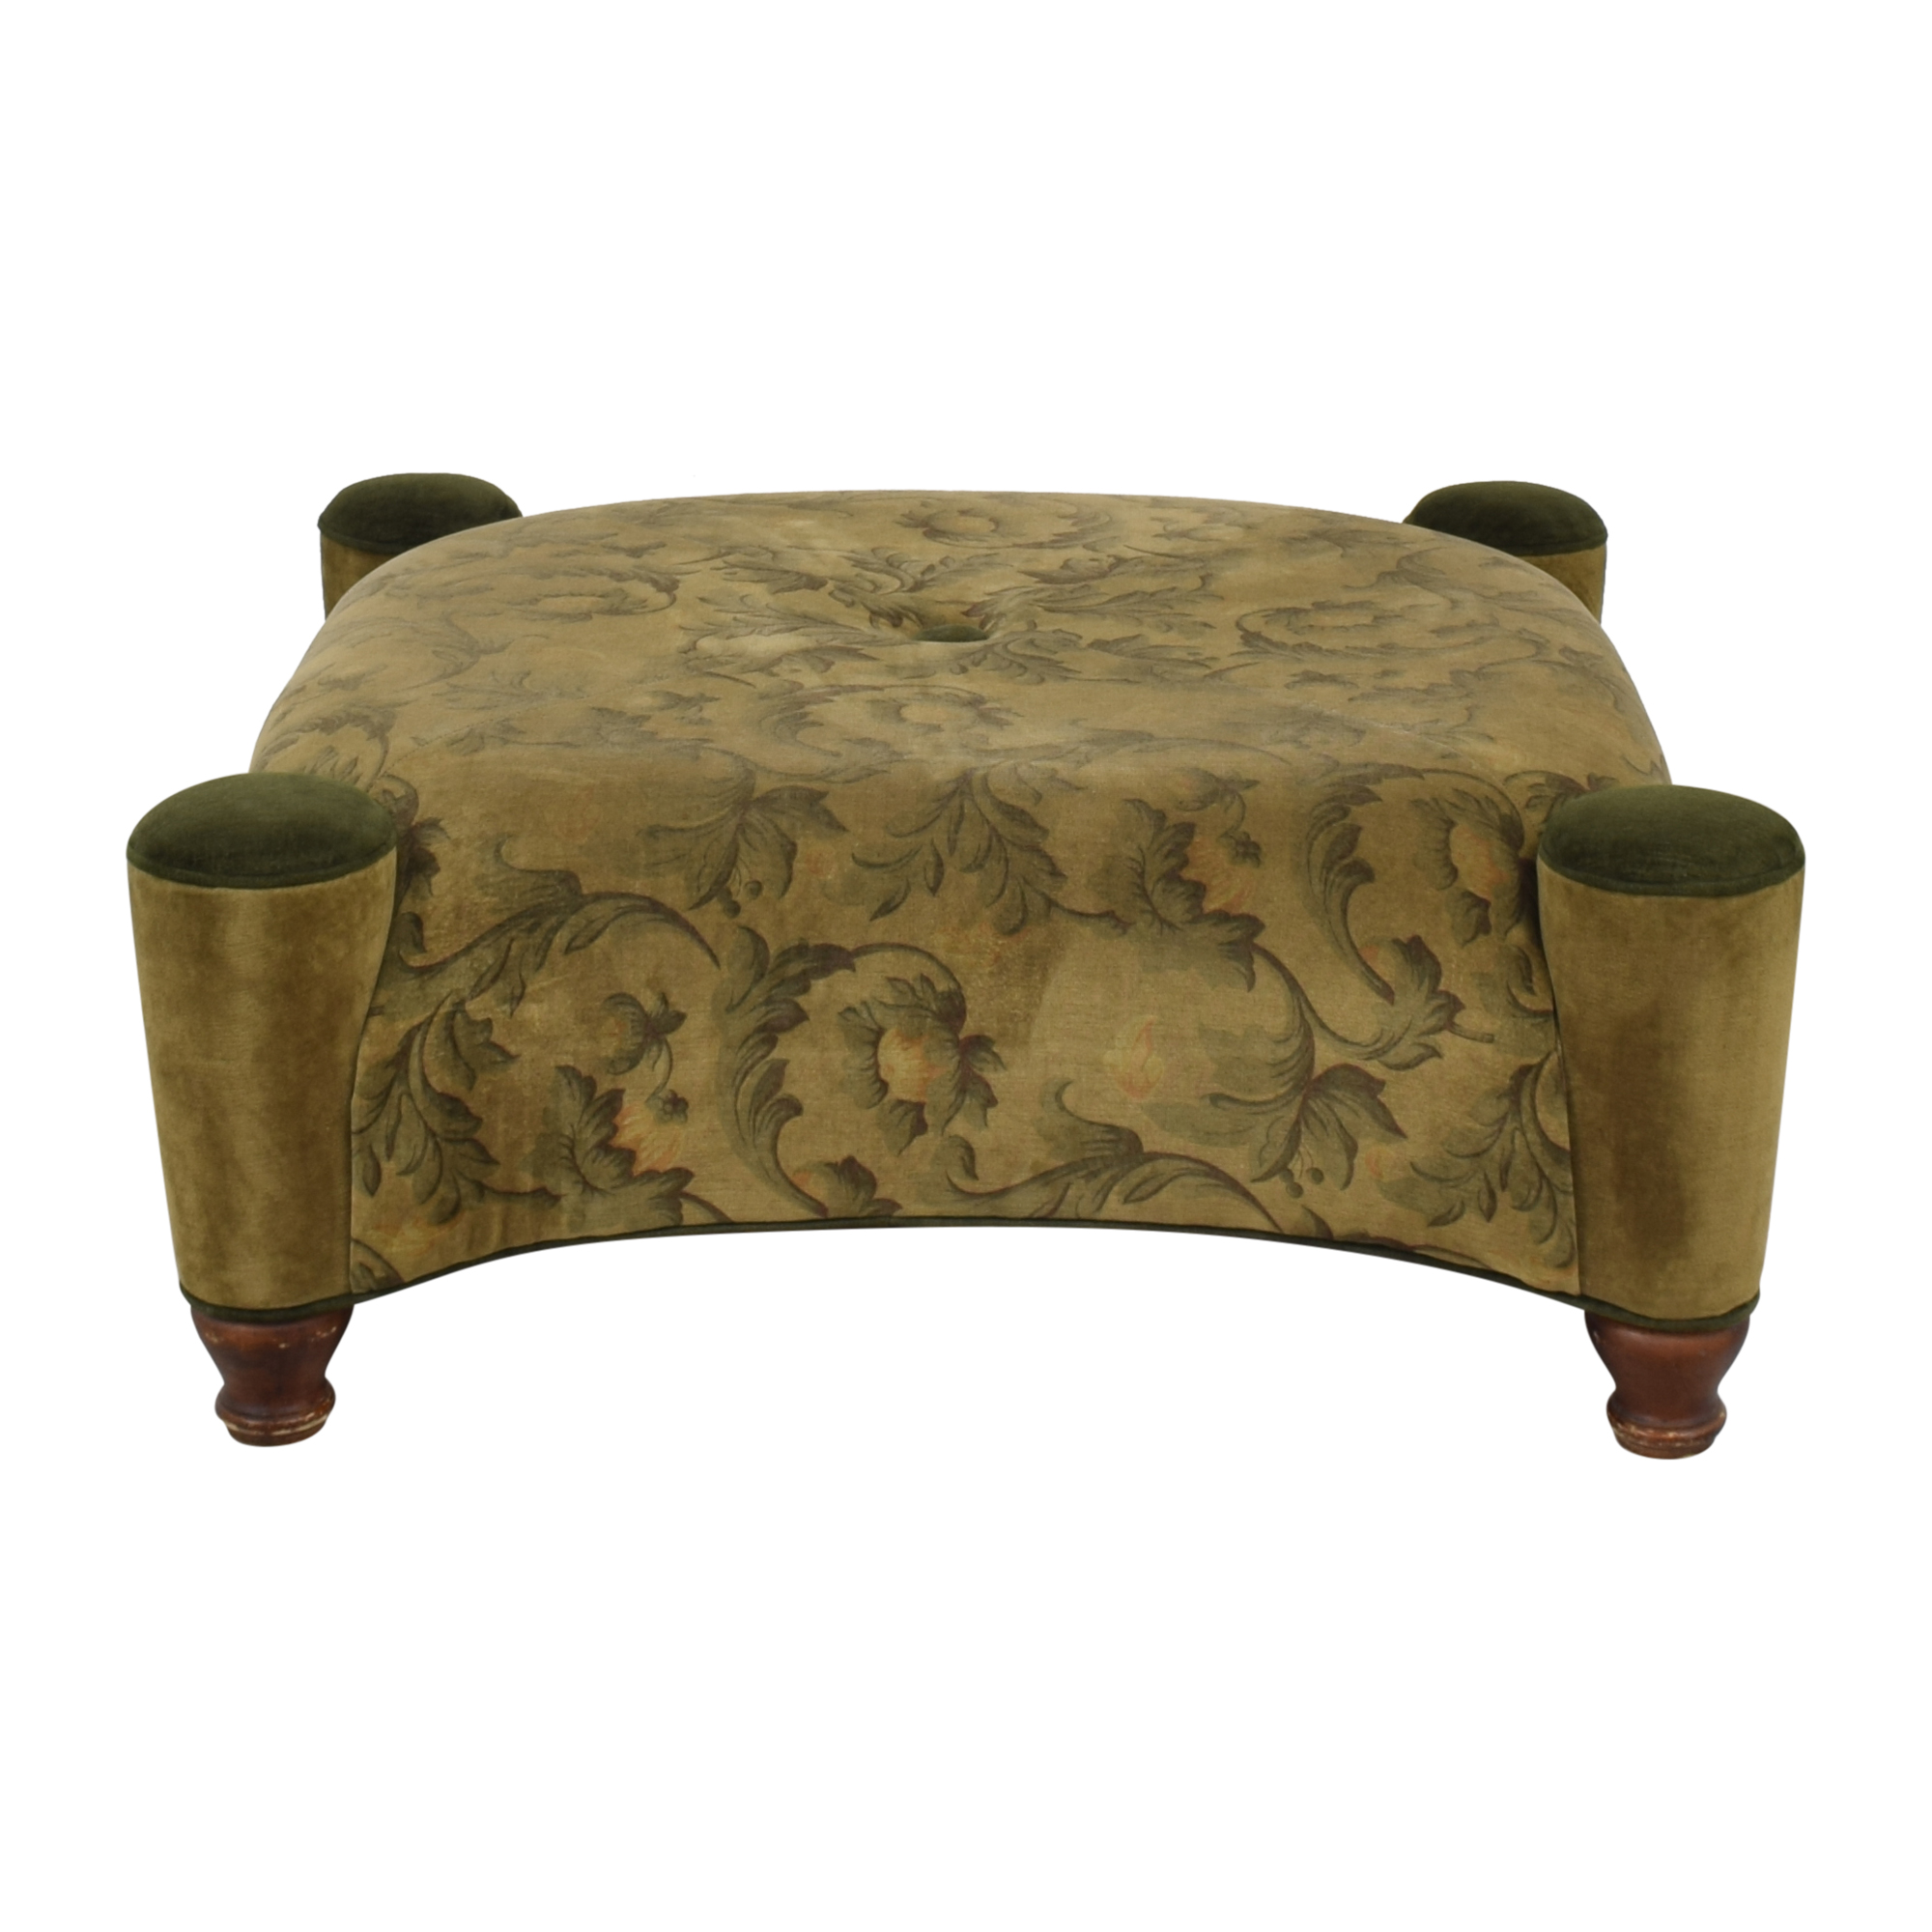 City Furniture Patterned Ottoman dimensions